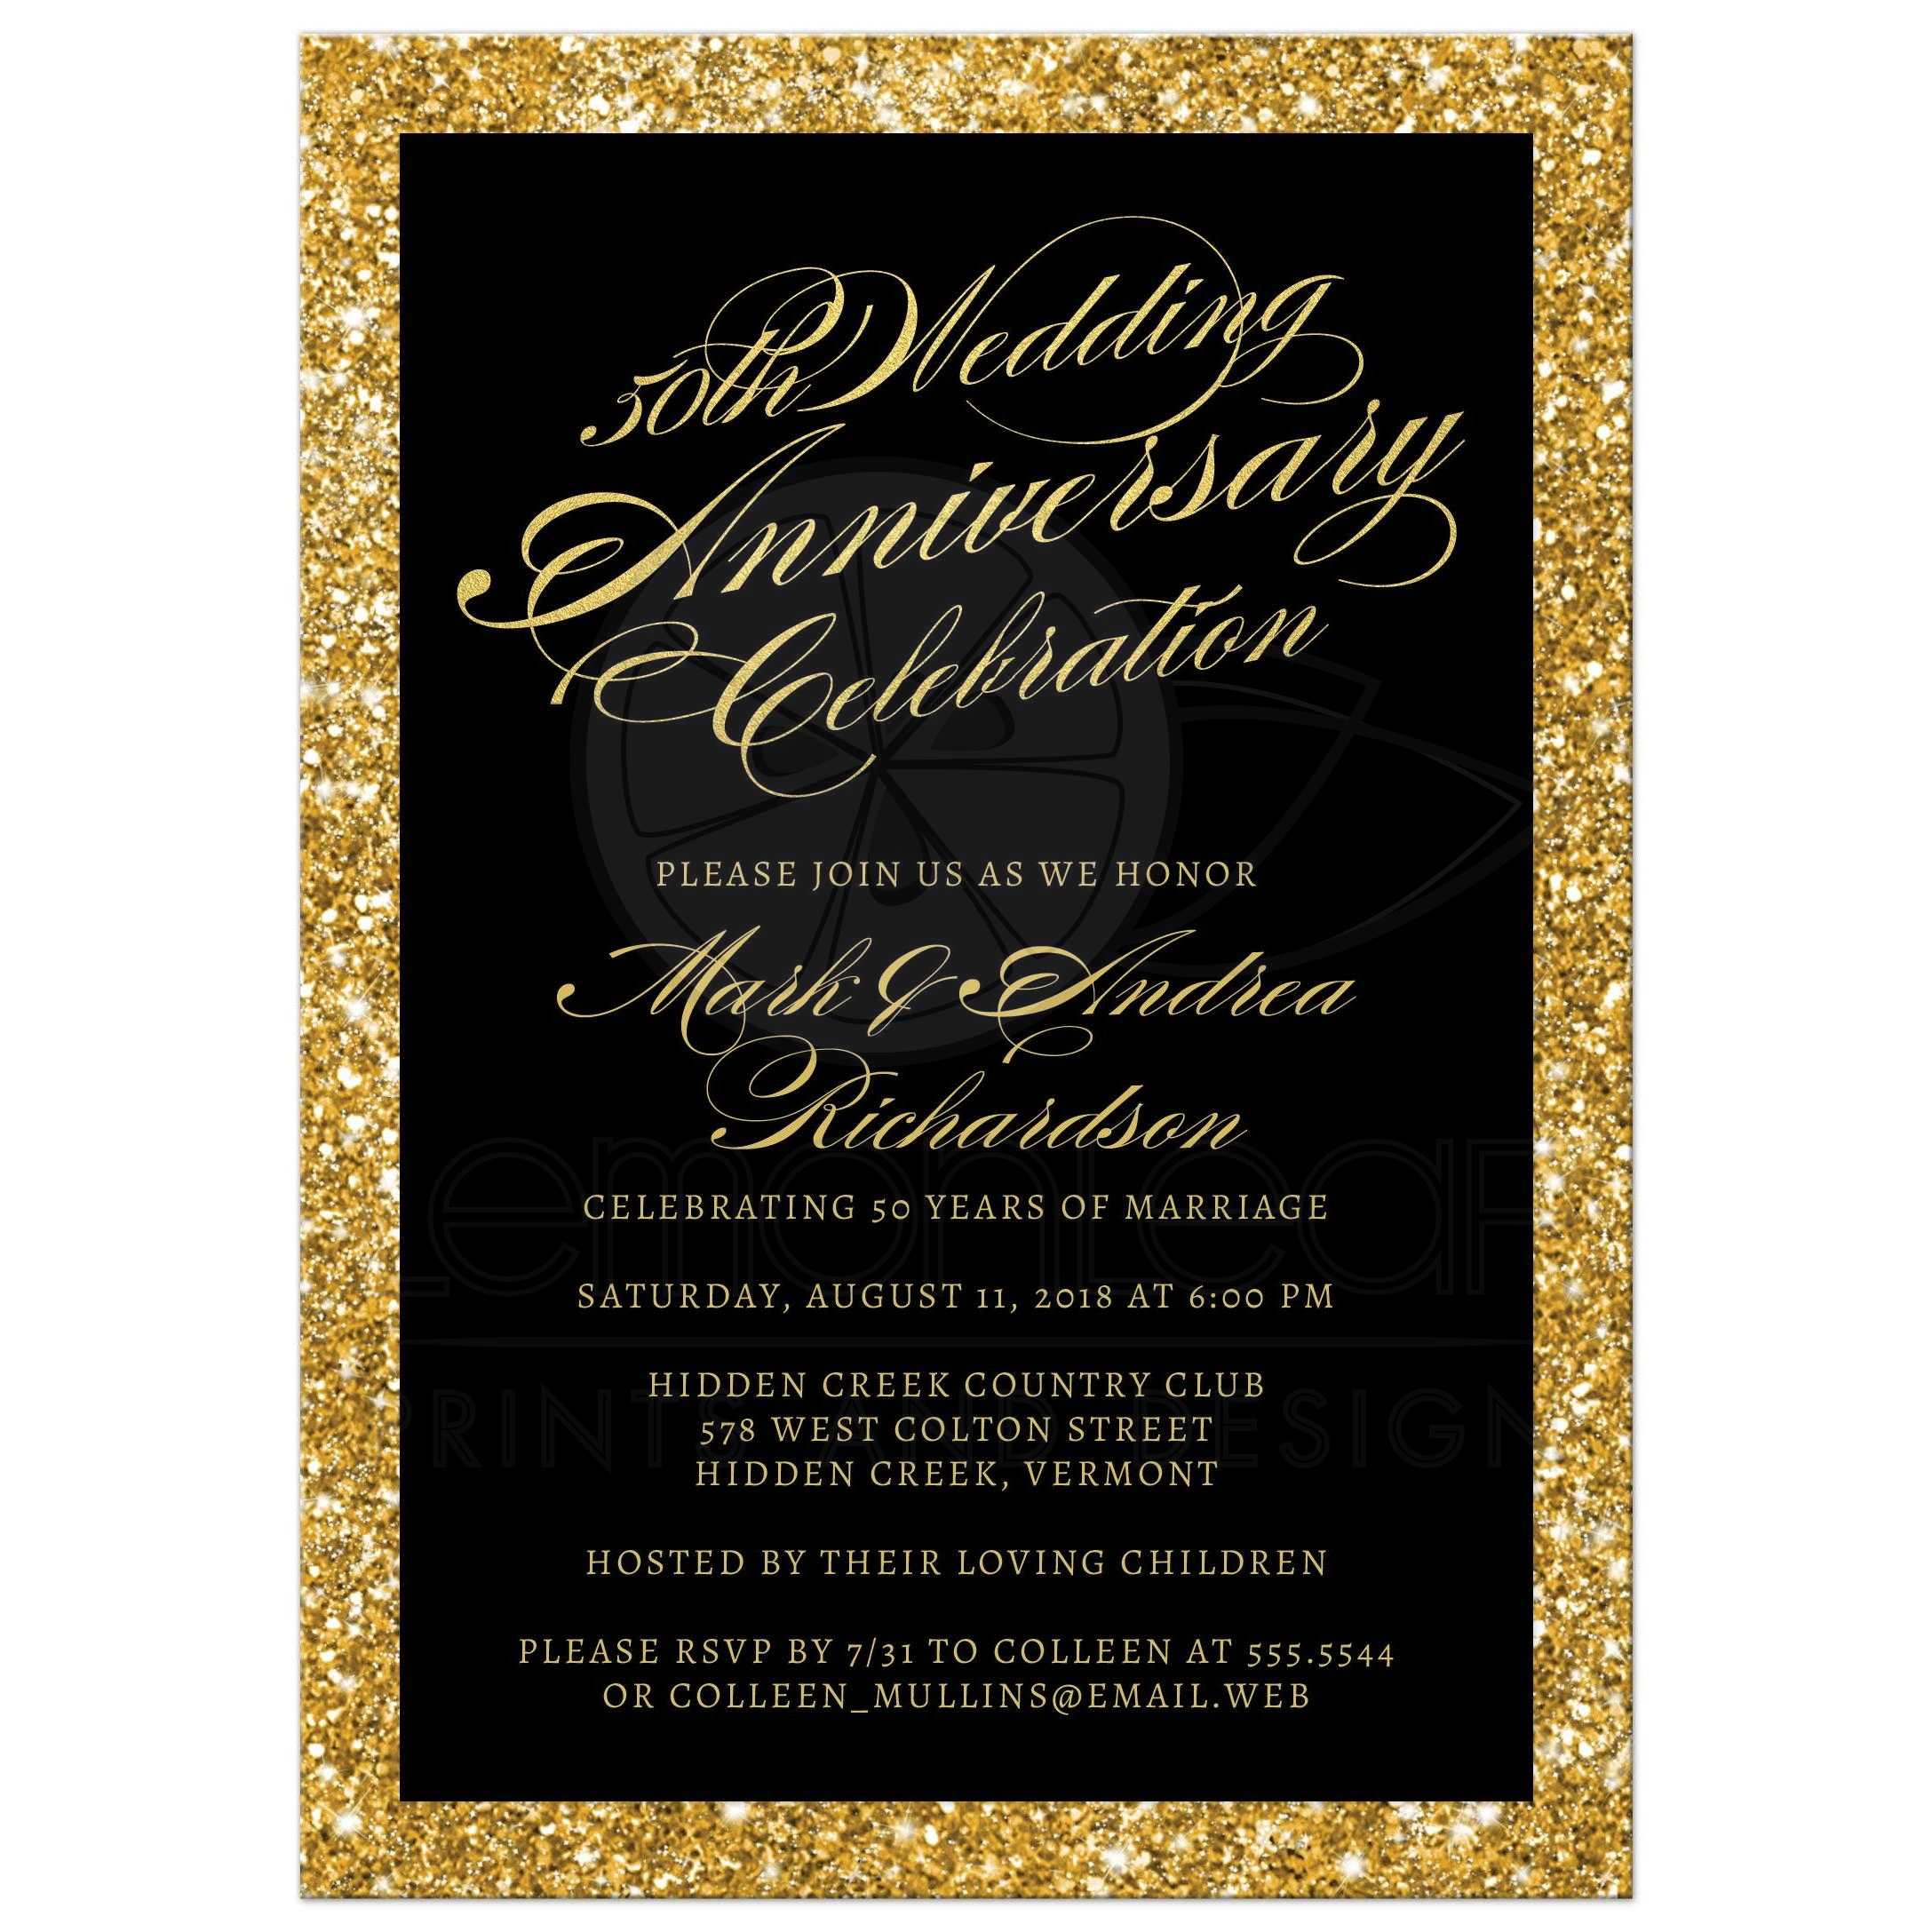 50th Wedding Anniversary Party Invitations - Gold Sparkle